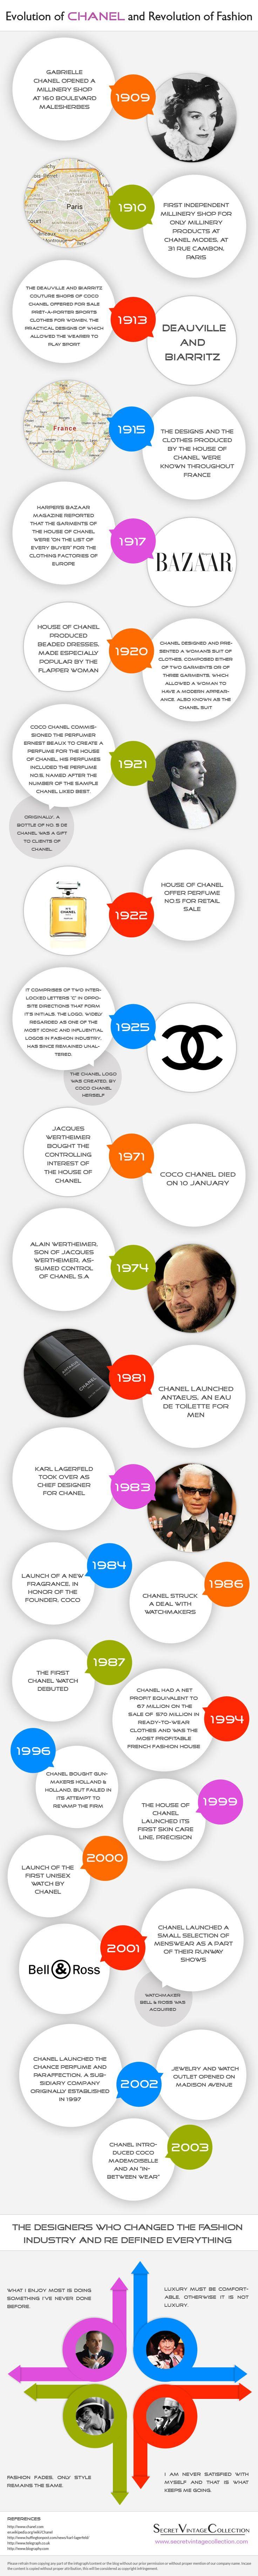 Fashion Revolution: History of Chanel [Infographic]